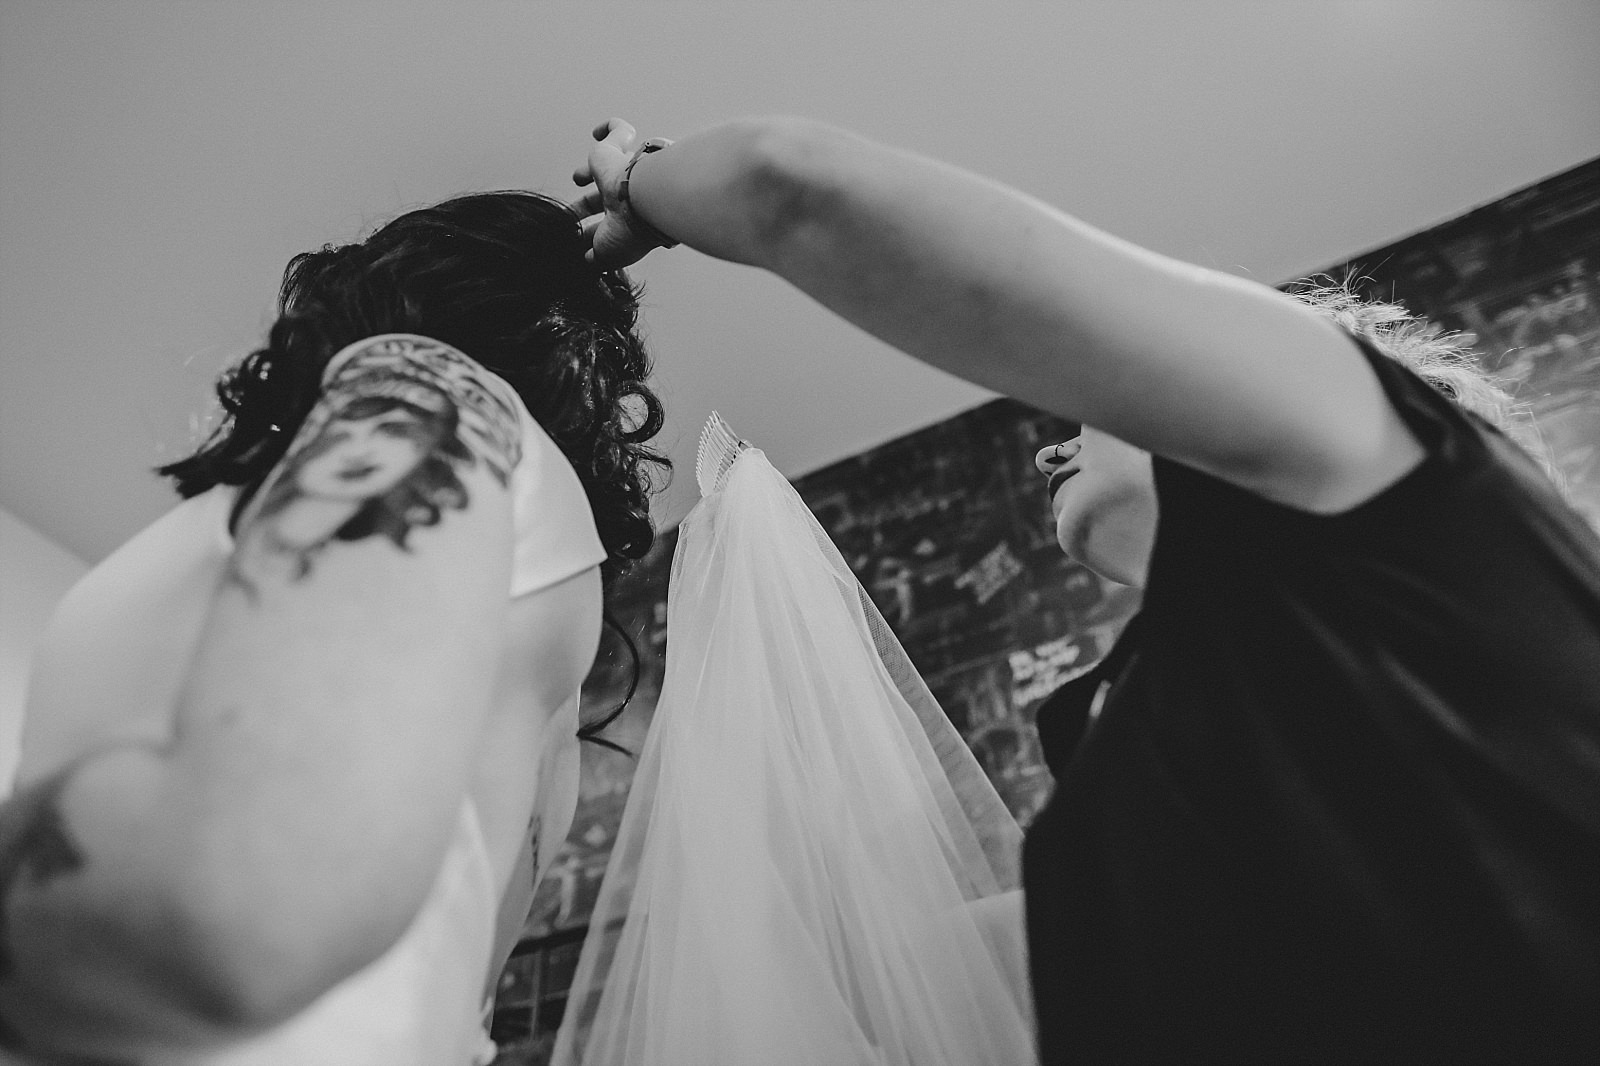 putting the veil on the bride